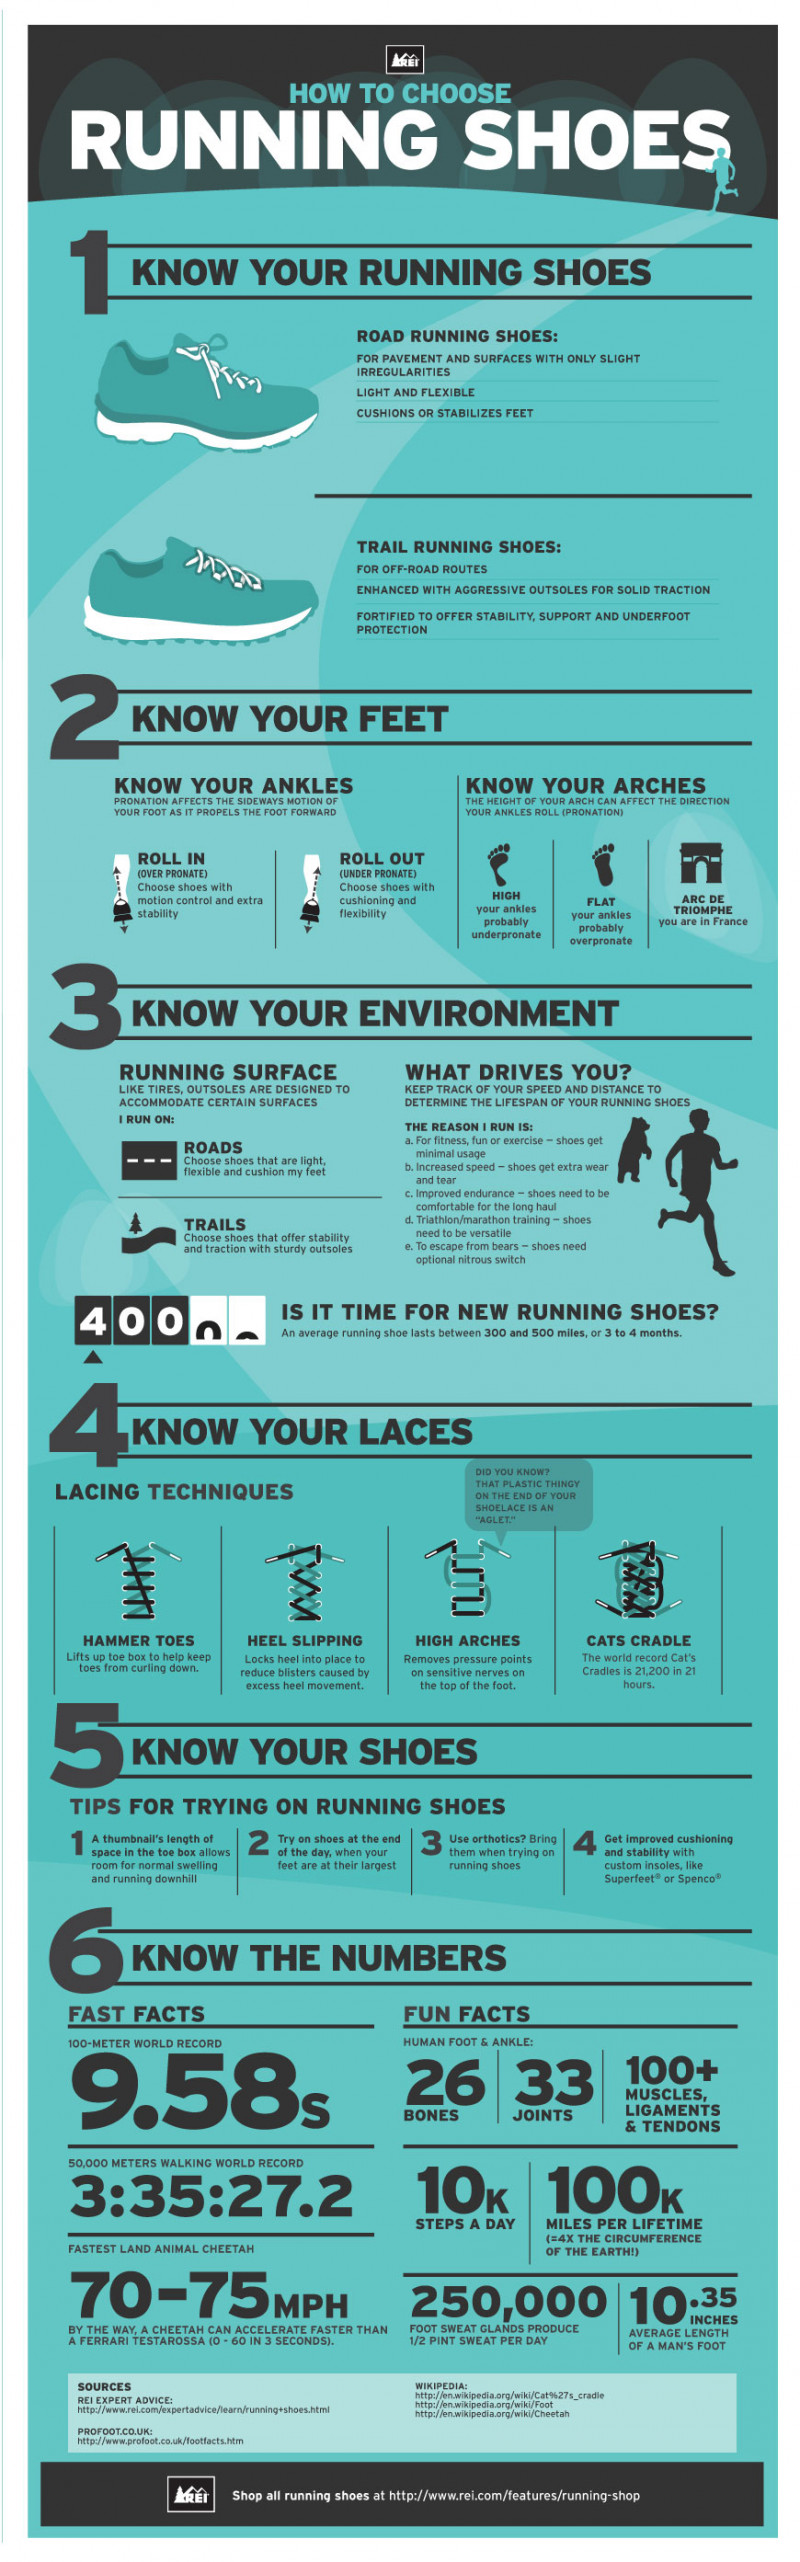 How to Choose Running Shoes - REI